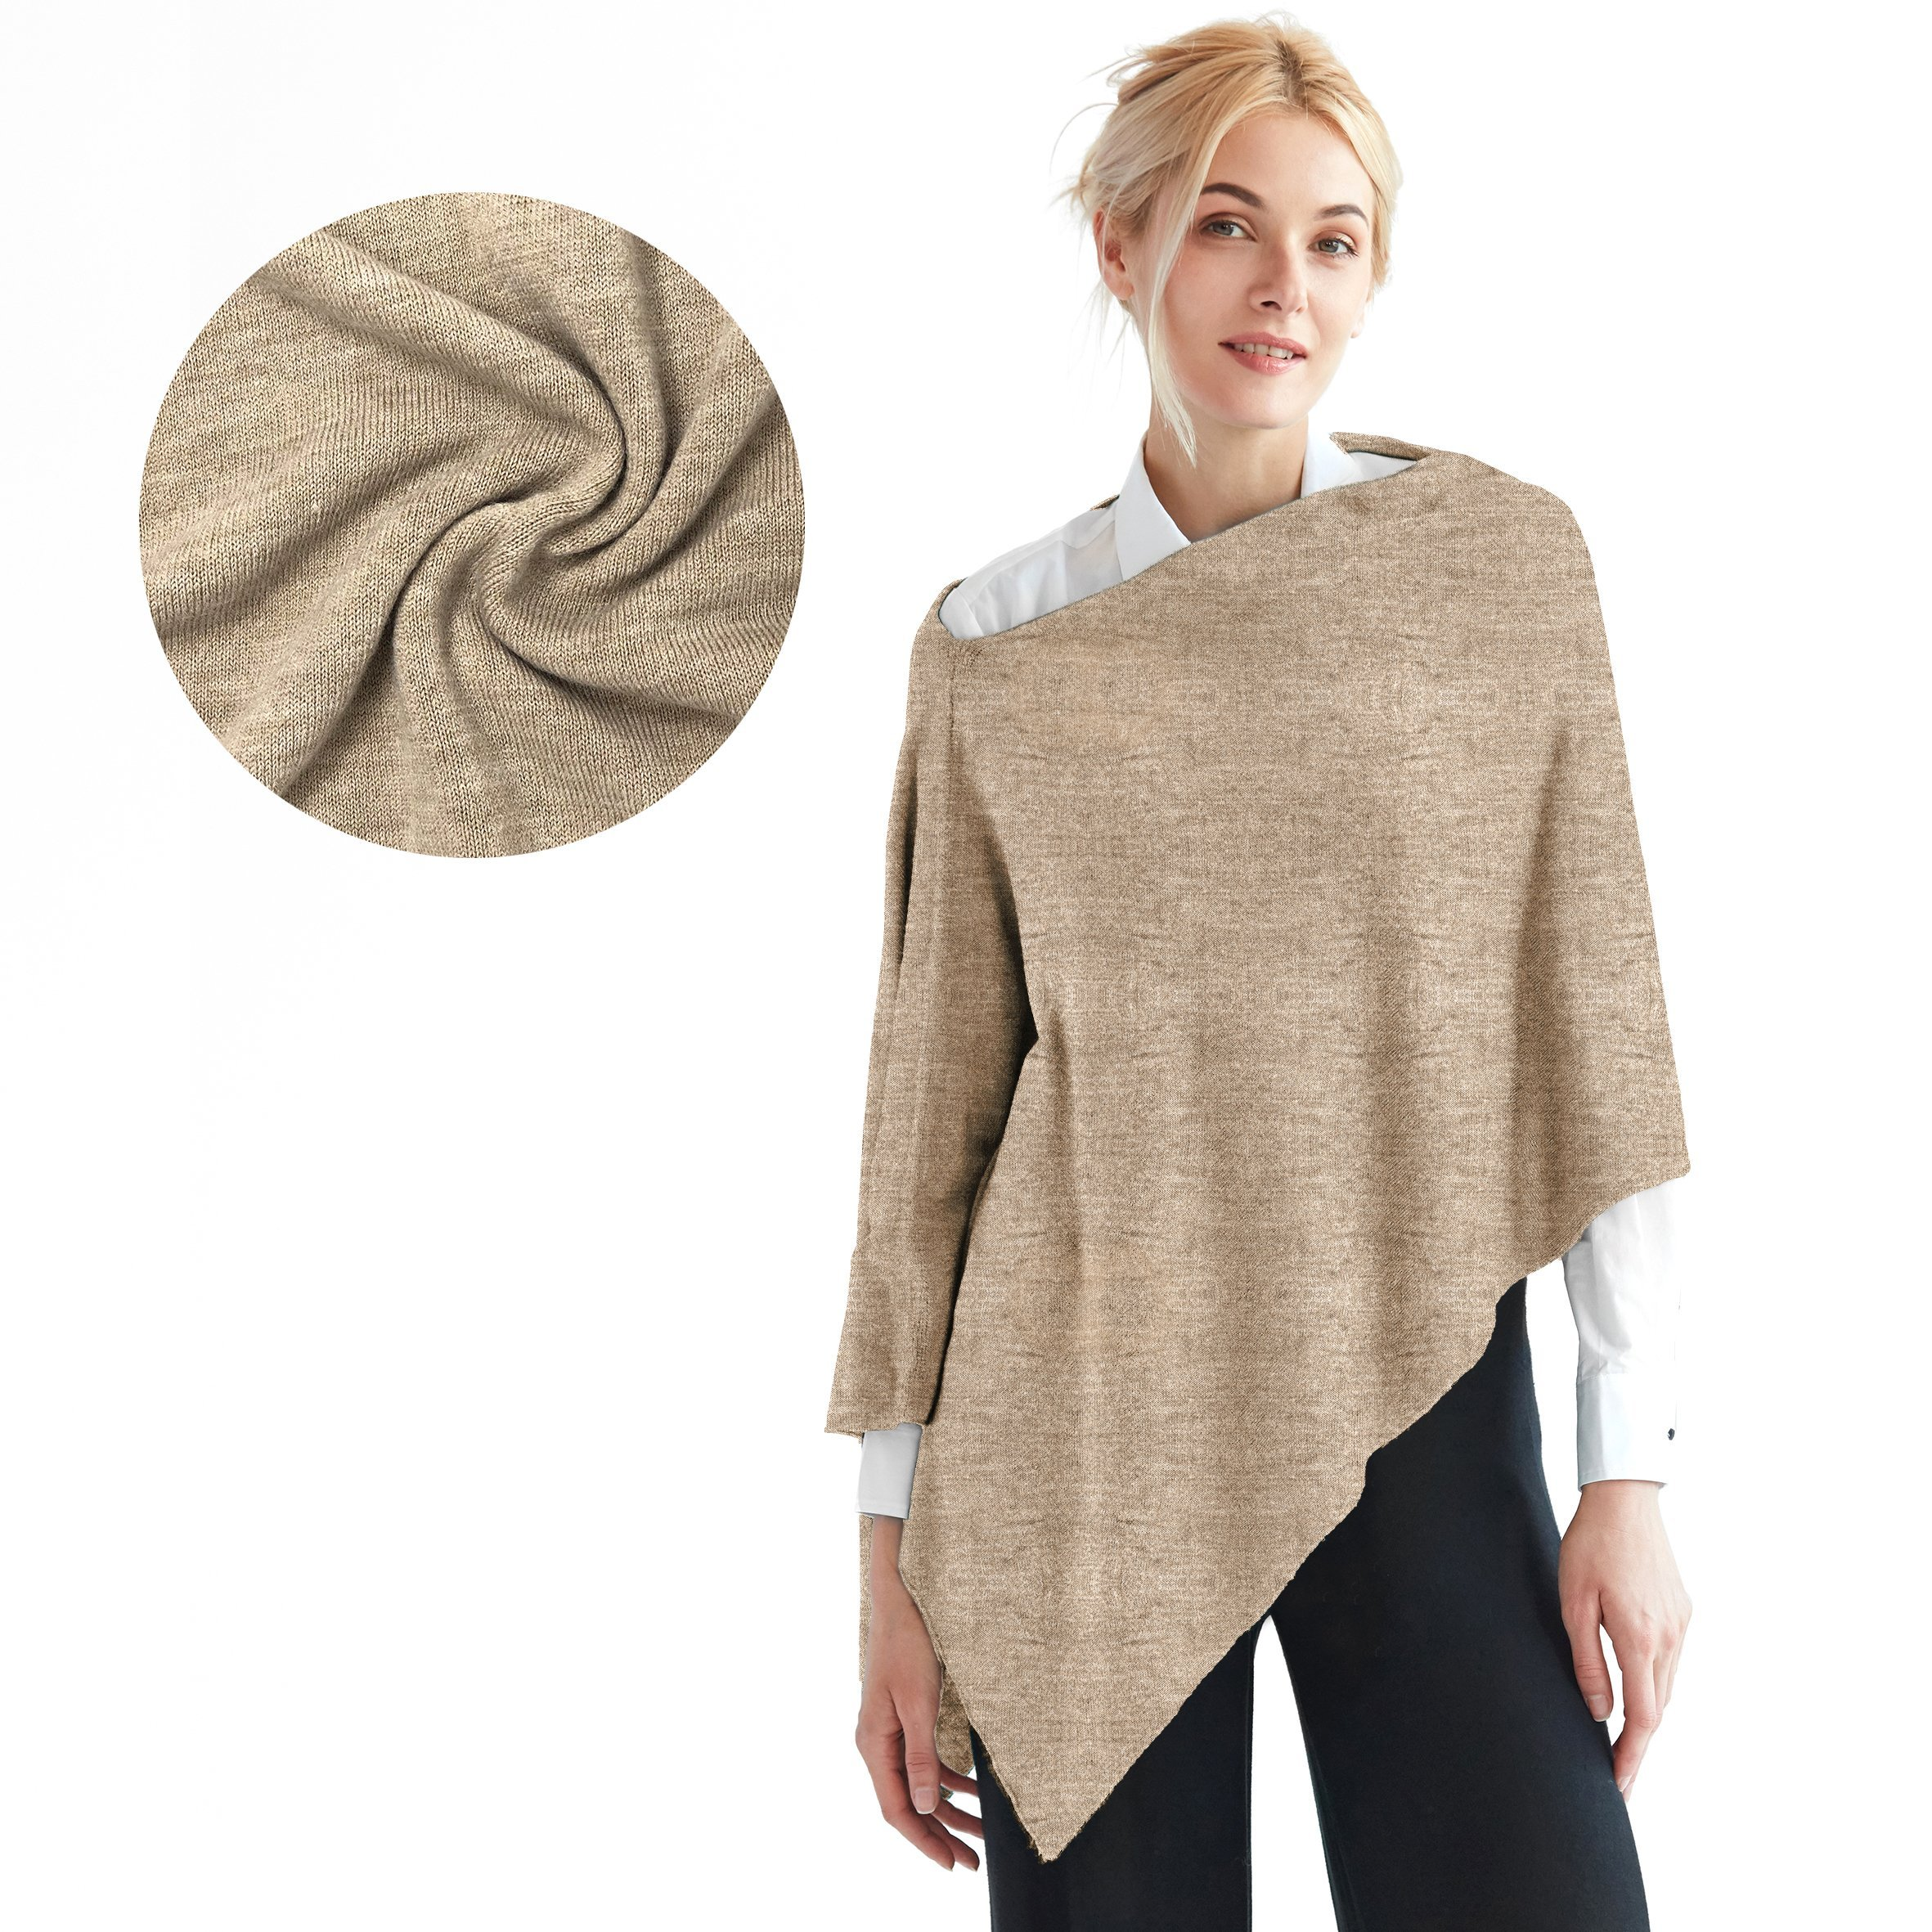 Faux Cashmere Acrylic 3 in One Poncho Topper FREE Linen Pouch One Size